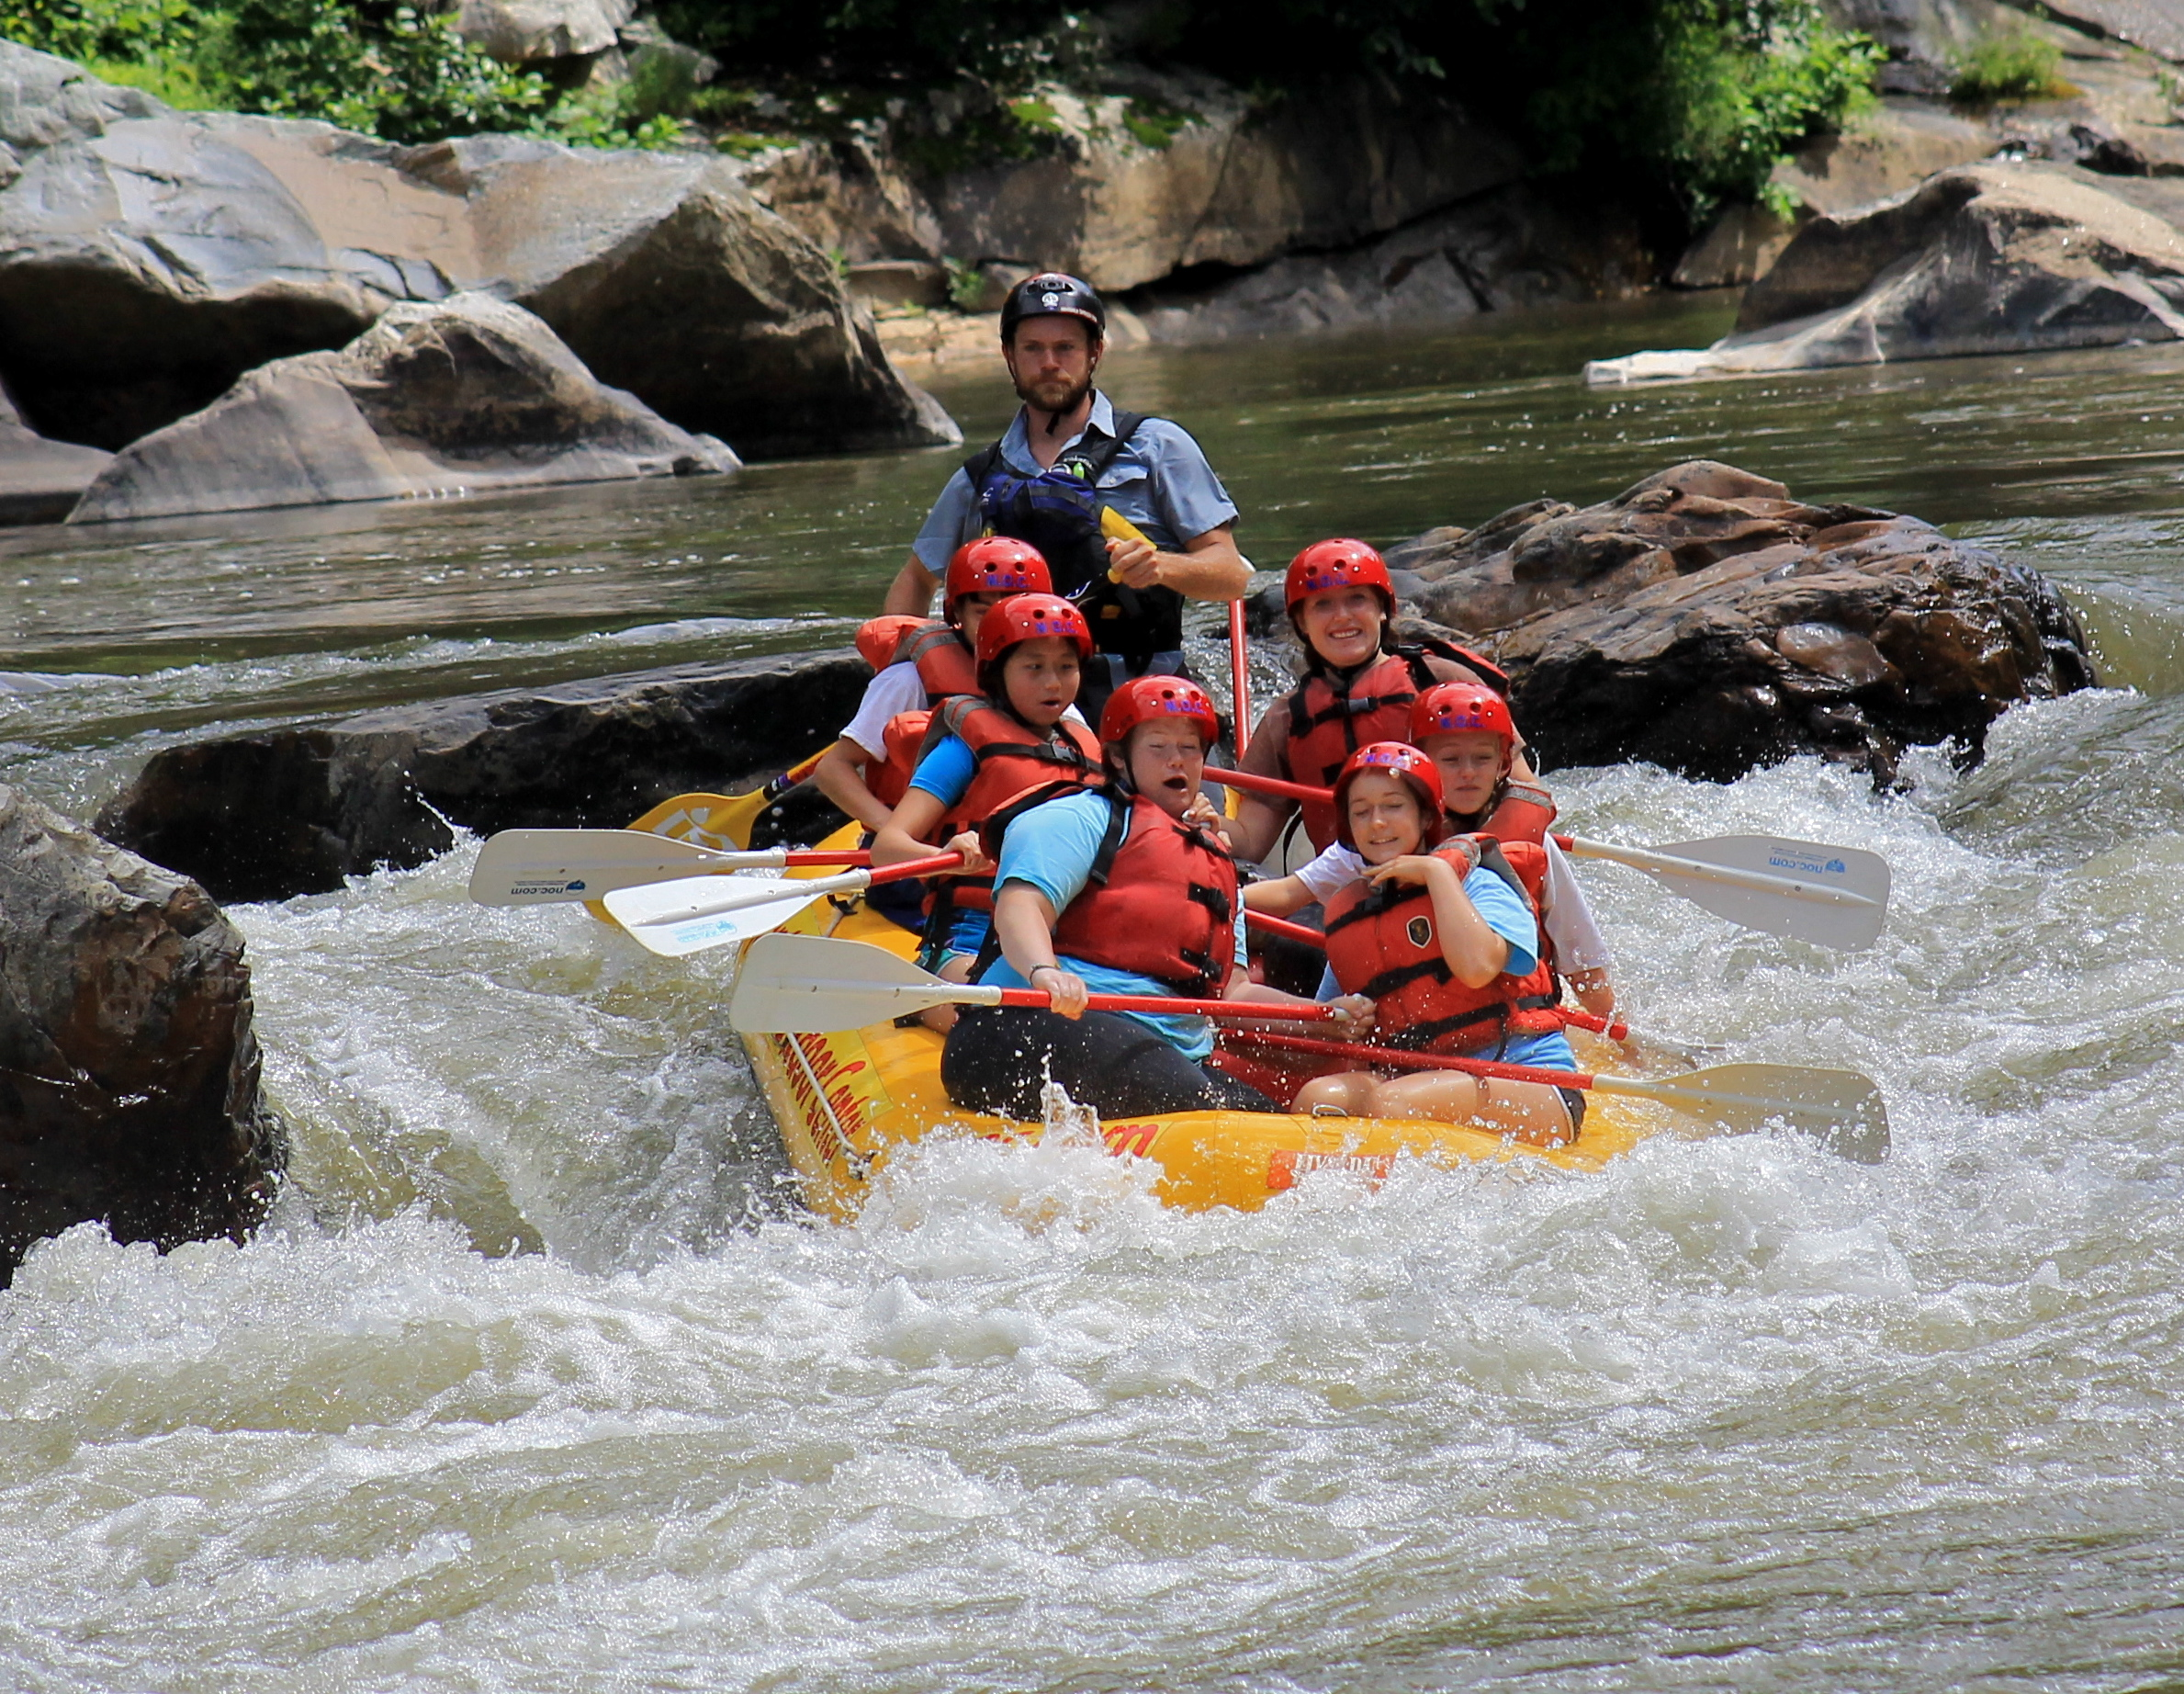 Camp Summer : Riding the rapids with Nantahala Outdoor Center!